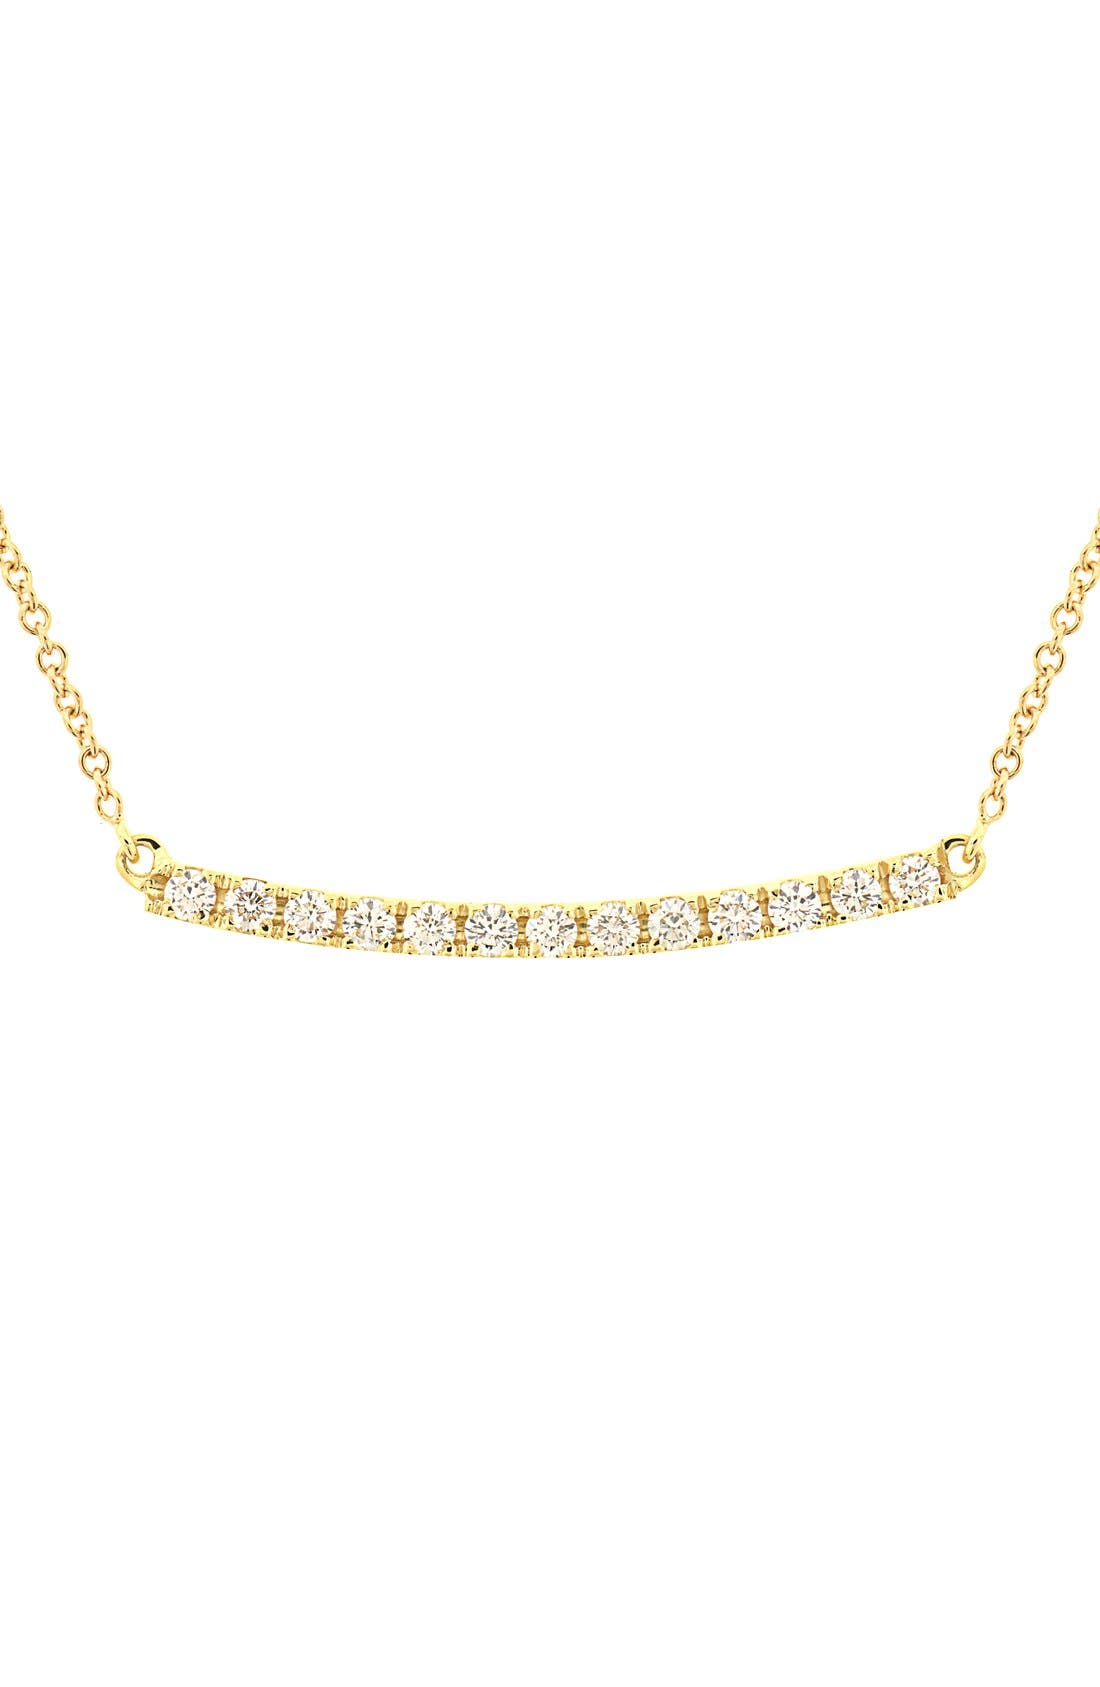 Fiery diamonds blanket a slender white-gold bar in a contemporary necklace that looks great on its own, or layered with other pendants. Style Name: Bony Levy Stick Pave Diamond Bar Necklace (Nordstrom Exclusive). Style Number: 905850. Available in stores.